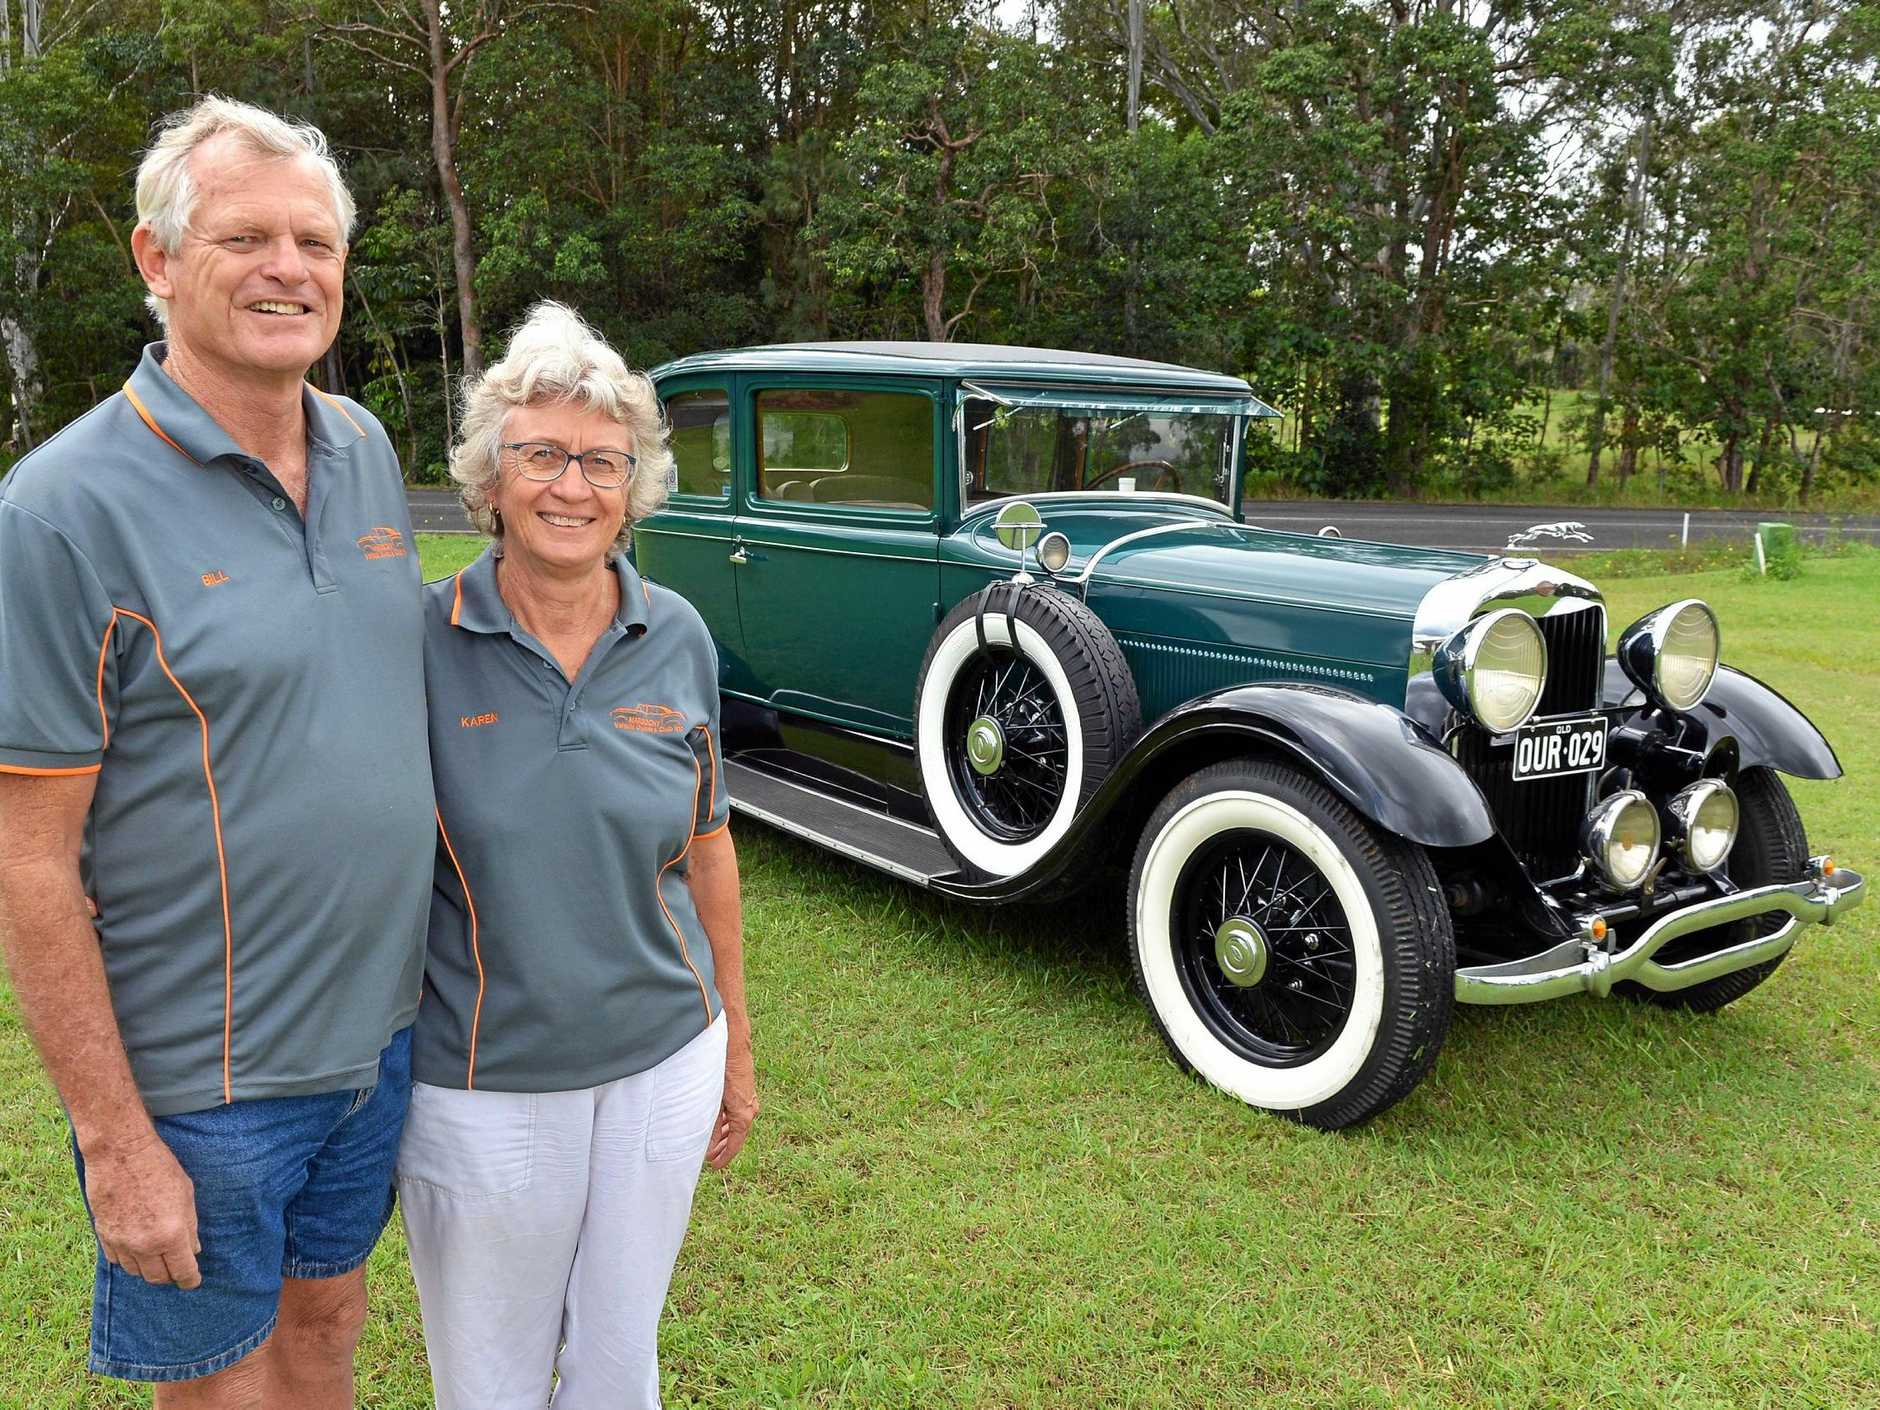 A PENCHANT FOR RESTORATION: Bill and Karen Ryan with their 1929 Lincoln 5 Passenger Coupe.